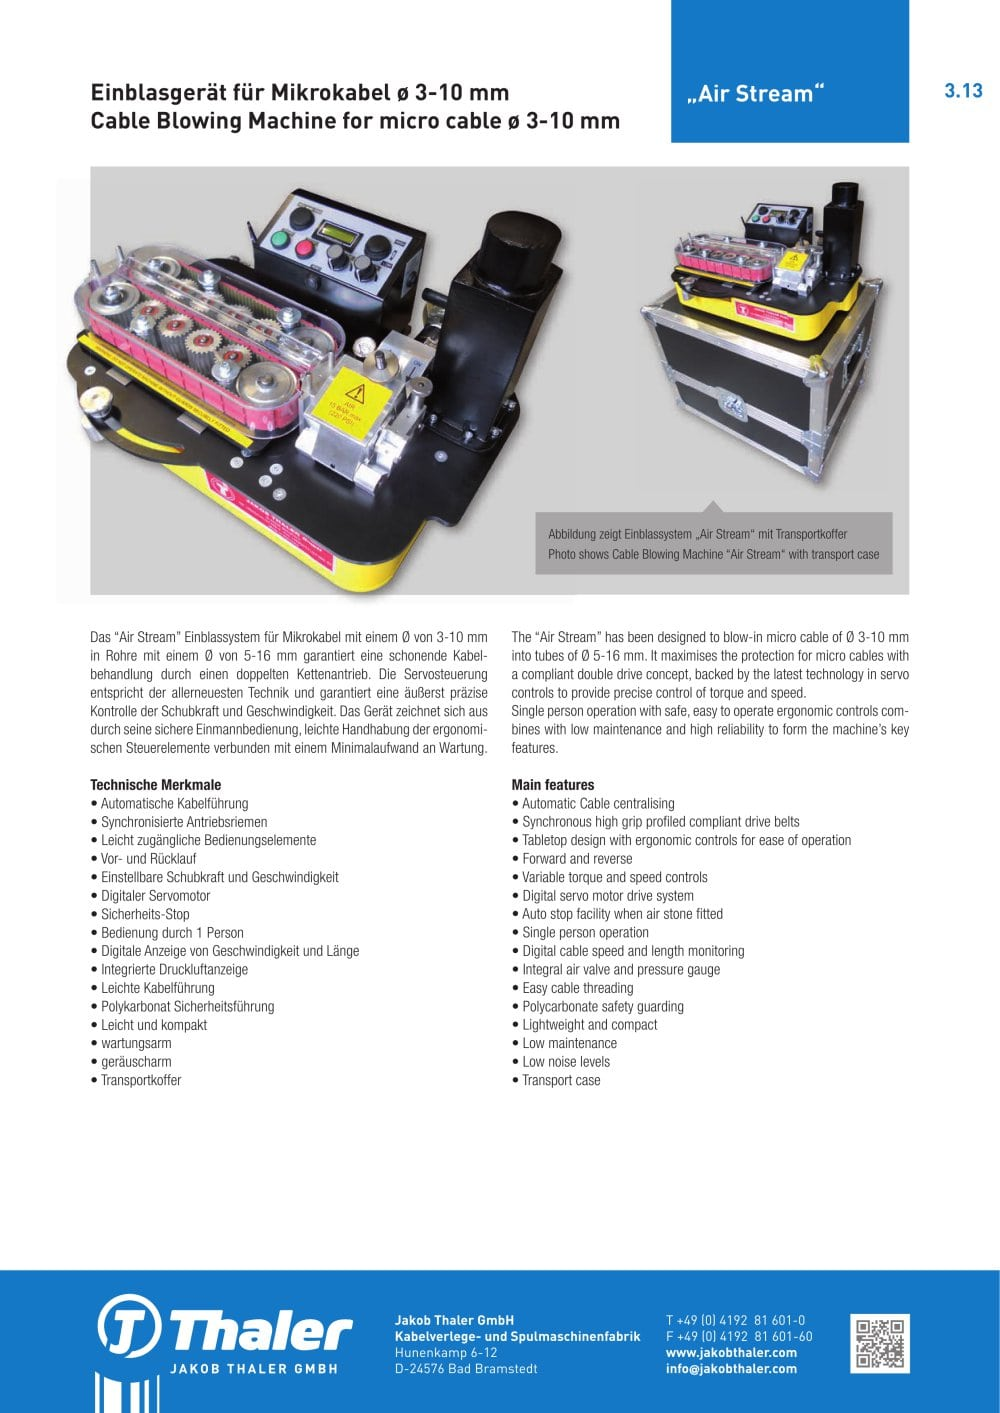 Air Stream Blowing Machine for micro cable - Jakob Thaler GmbH - PDF ...